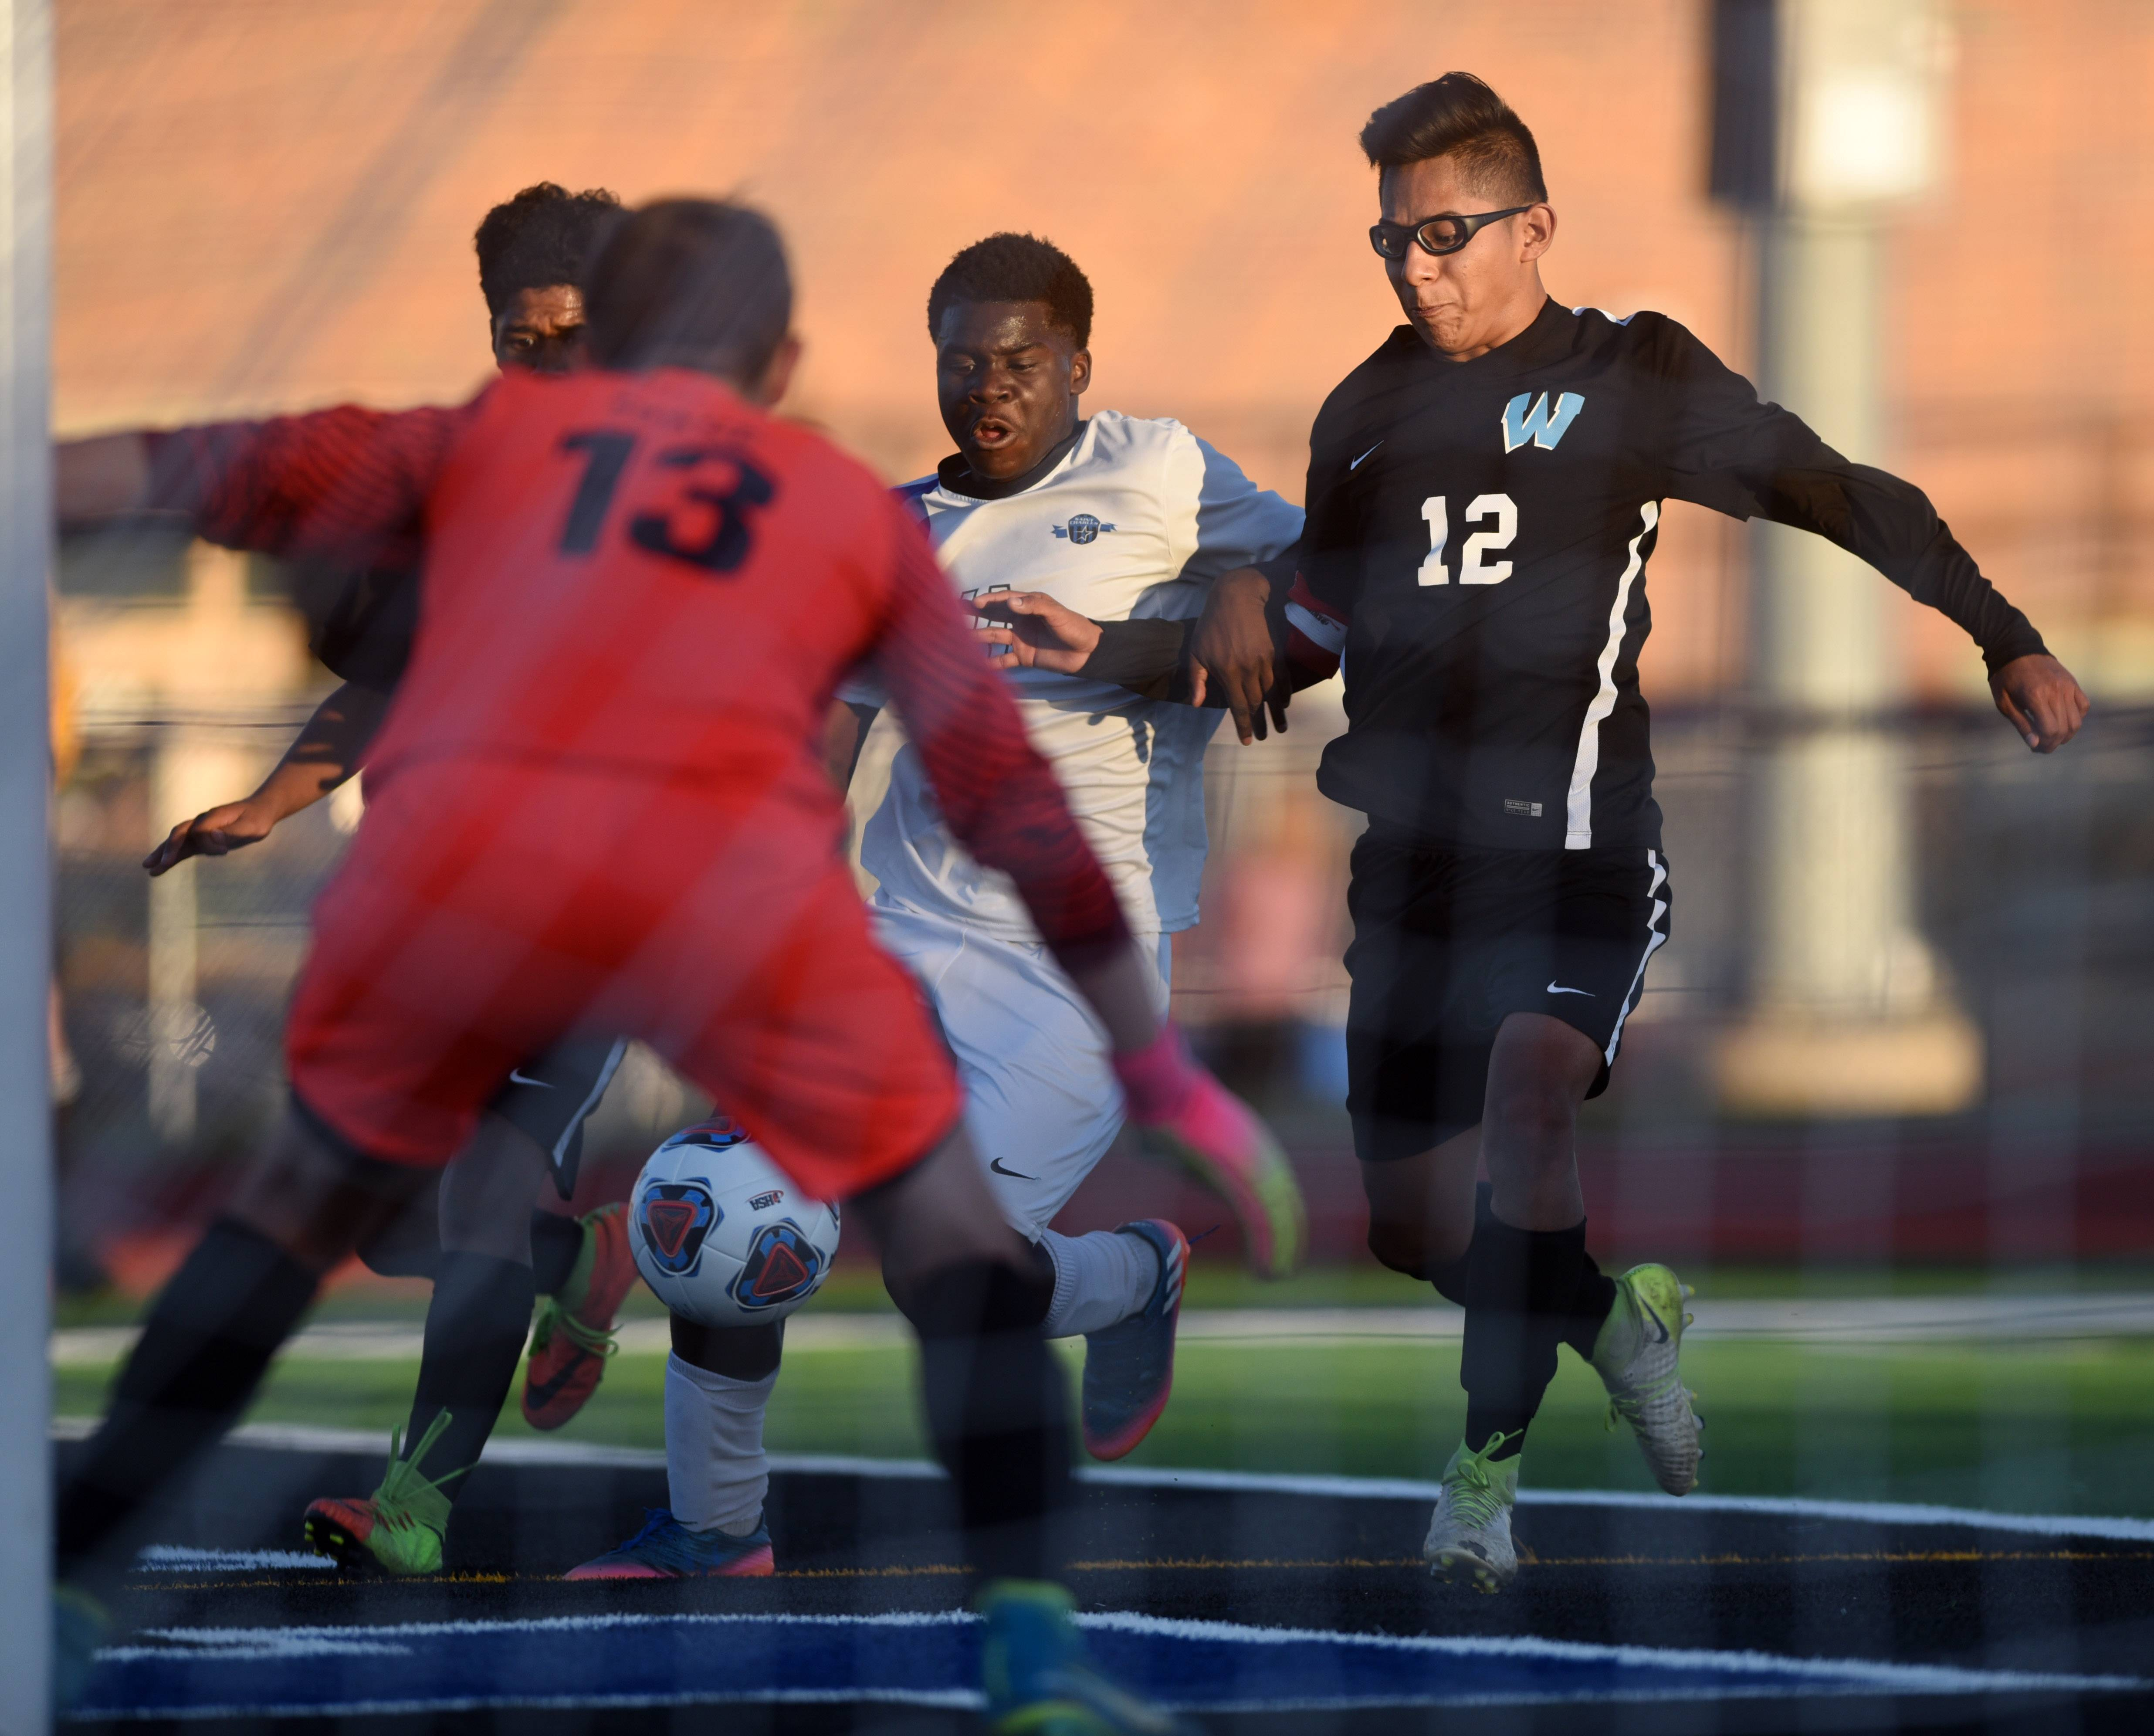 St. Charles North's Bernard Elegbede (11) fights off Willowbrook's Tomas Hernandez (12) to get off a shot with goalkeeper Mario Giase guarding the near post.